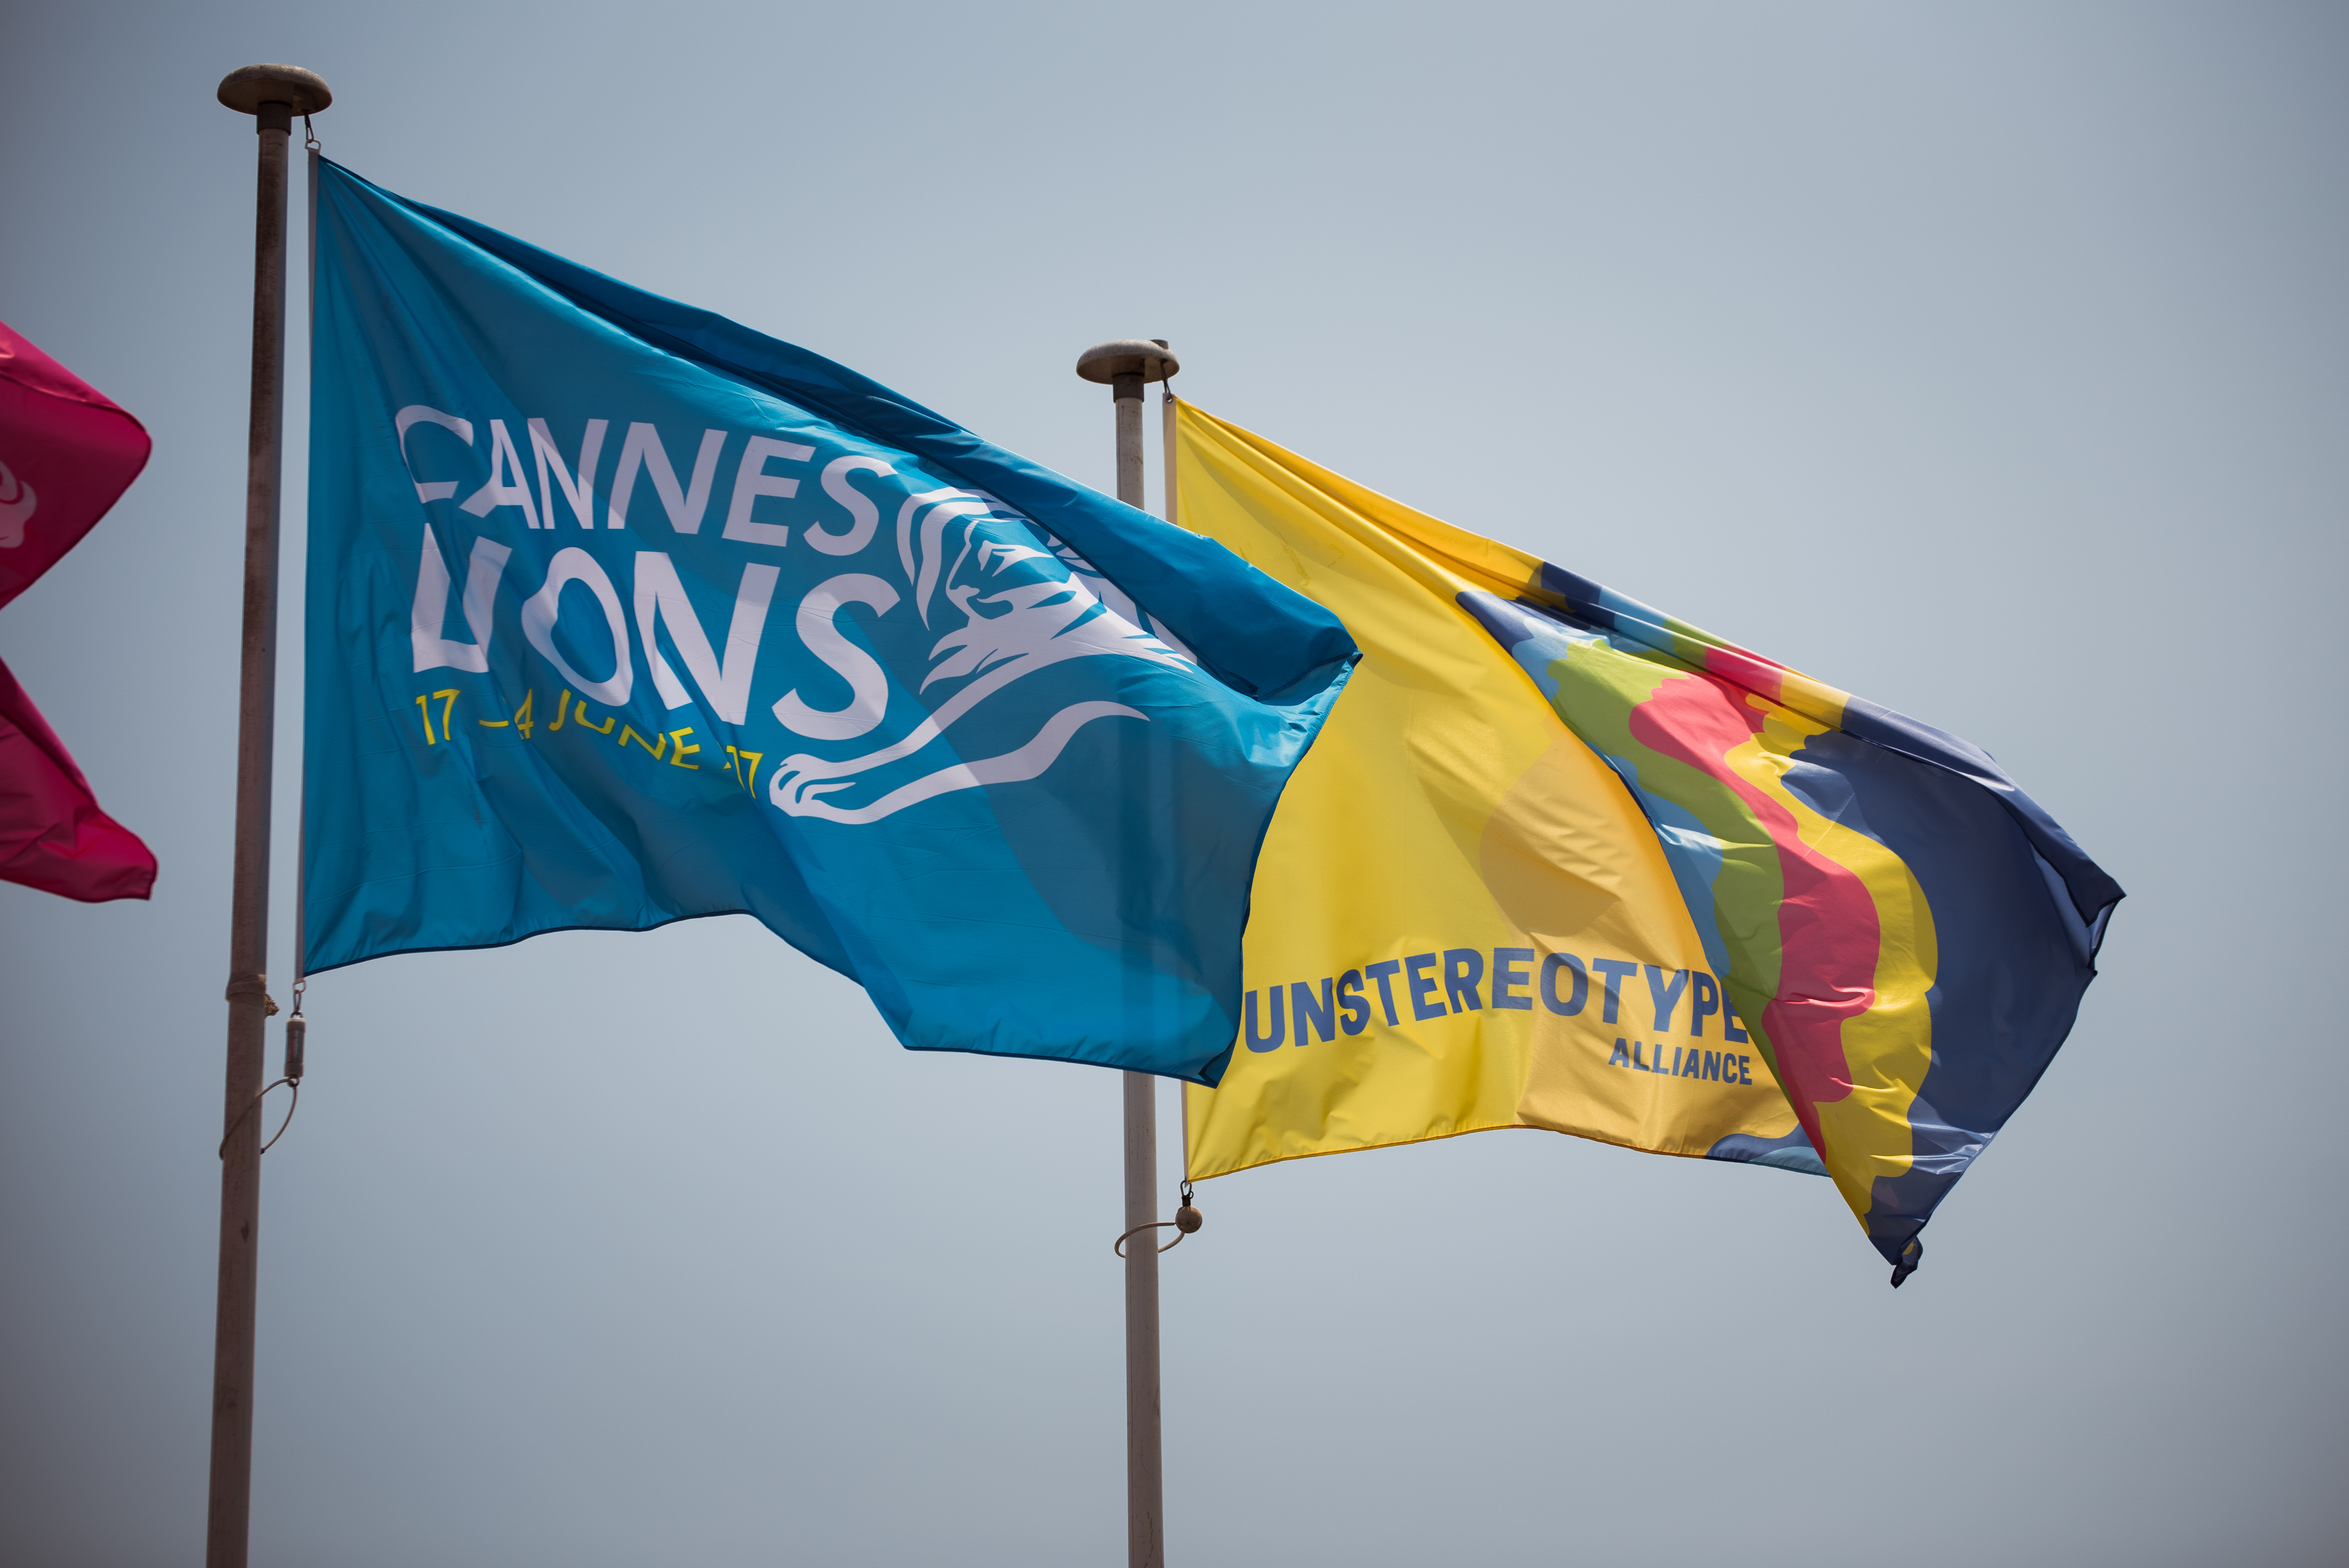 The #Unstereotype flag and the Cannes Lions flag at the annual advertising meeting